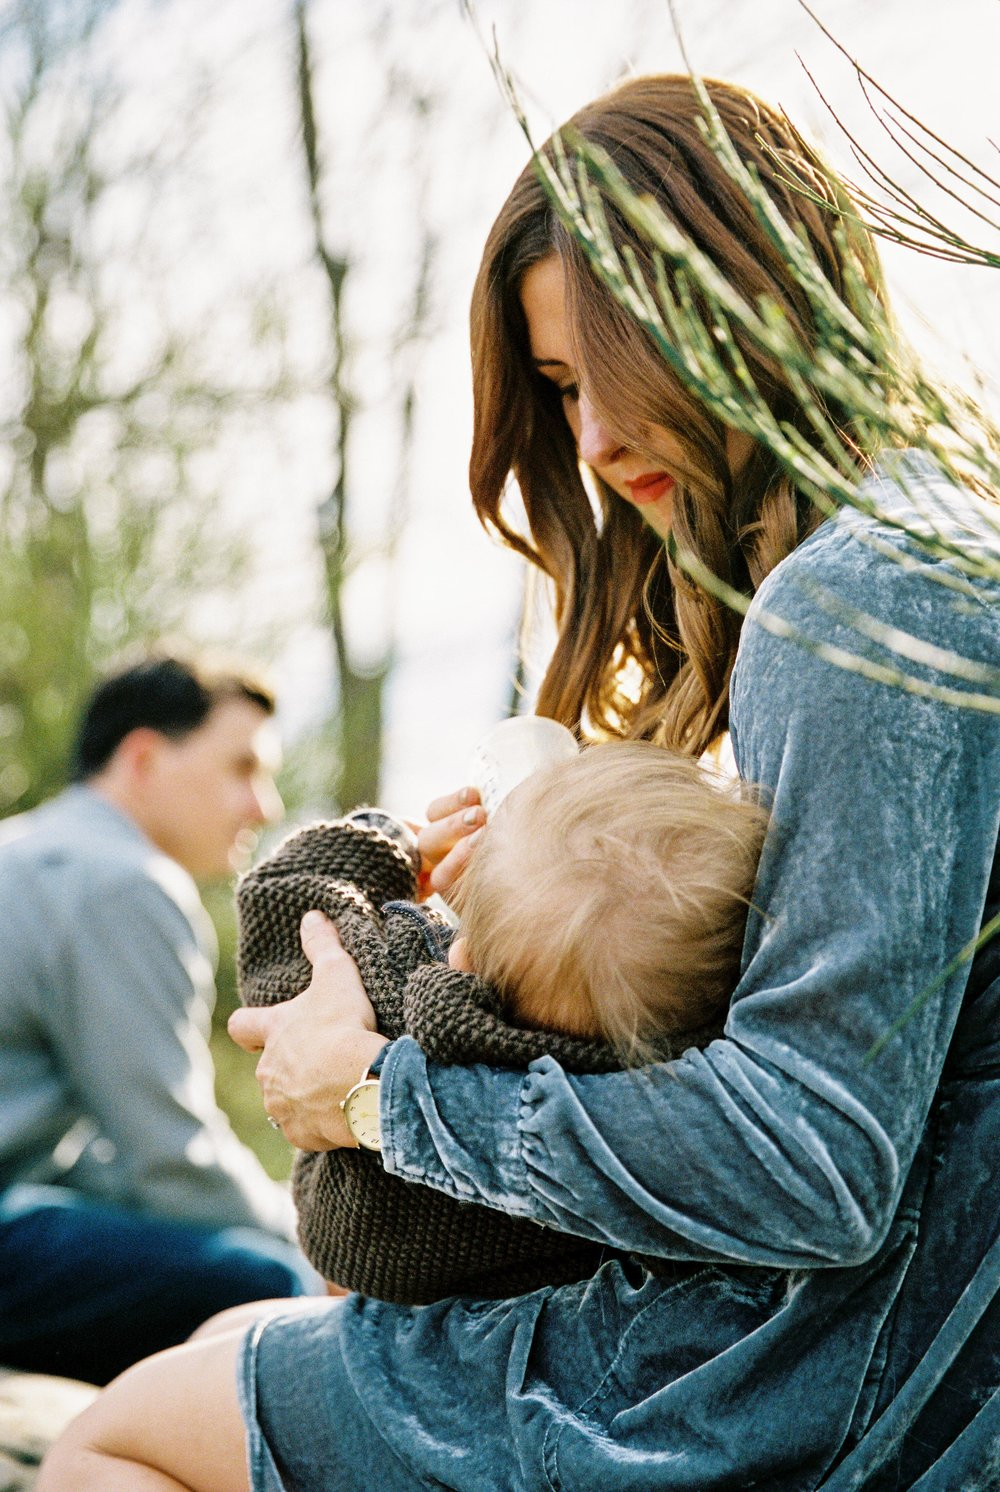 seattle family photographer photo discovery park children child kids kid mom dad brother double exposure film kodak portra 400 35mm pudget sound most popular top best rated photographer rachael kruse photography baby drinking bottle milk